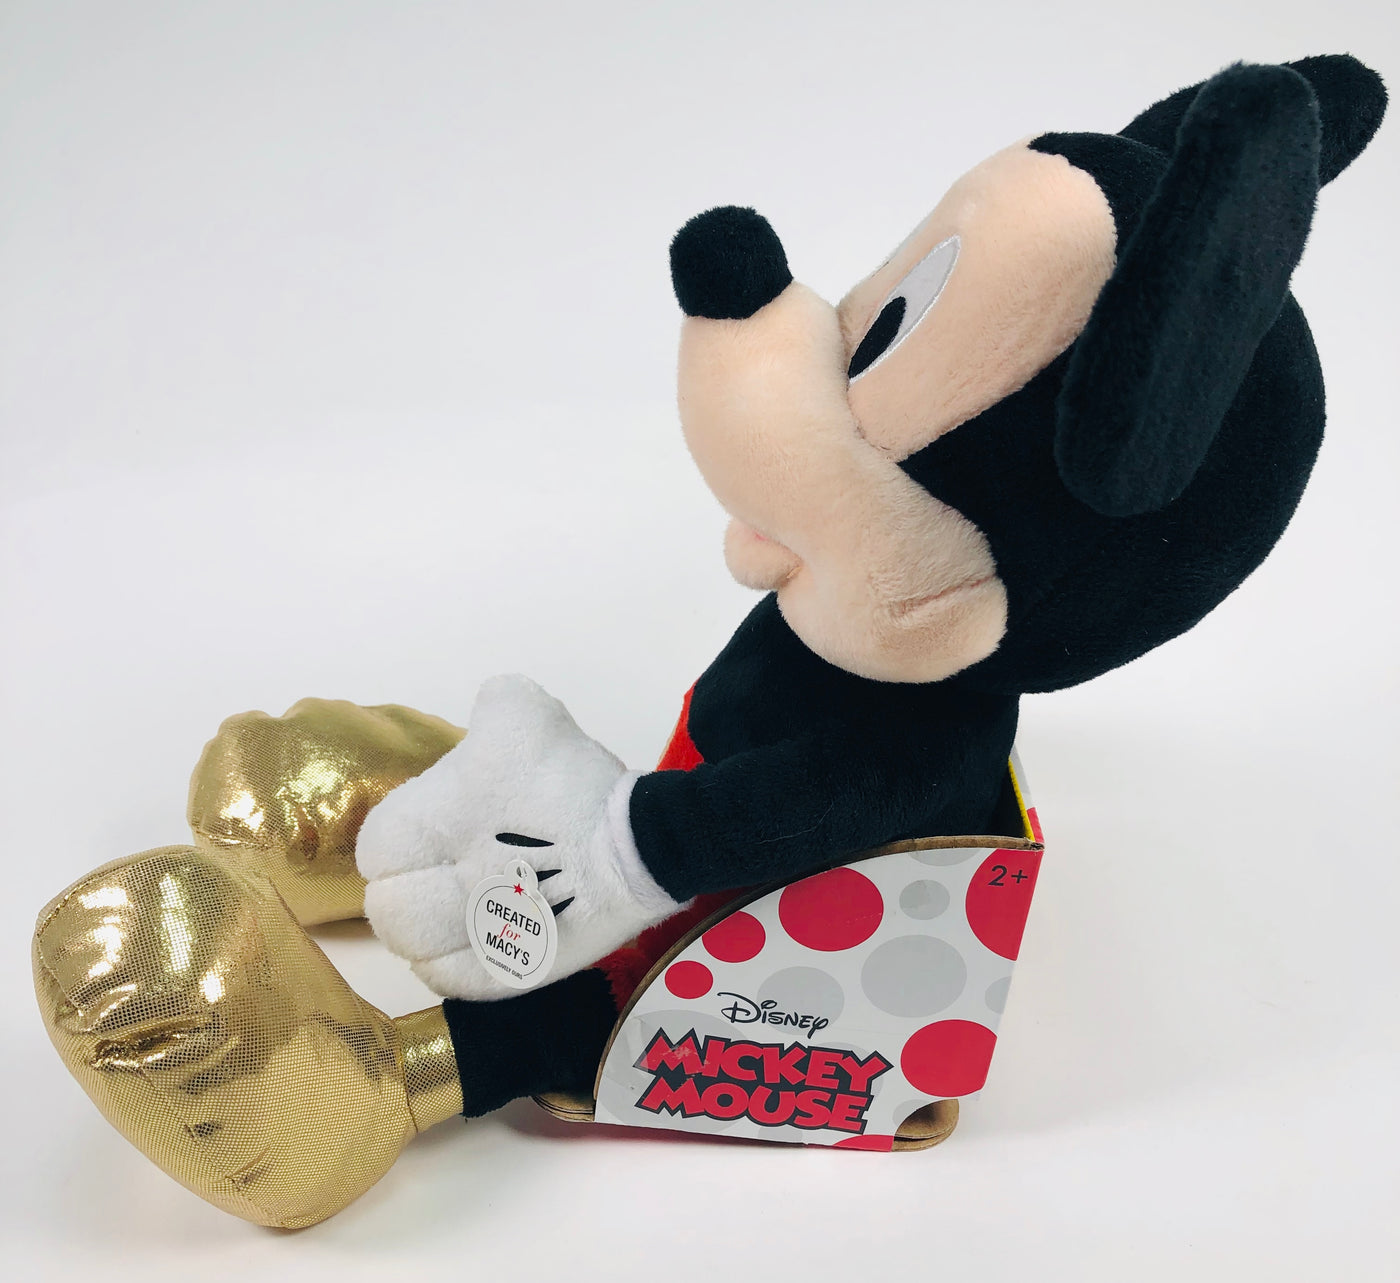 Disney Mickey Mouse Just Play Macys Exclusive Gold Feet Plush Doll